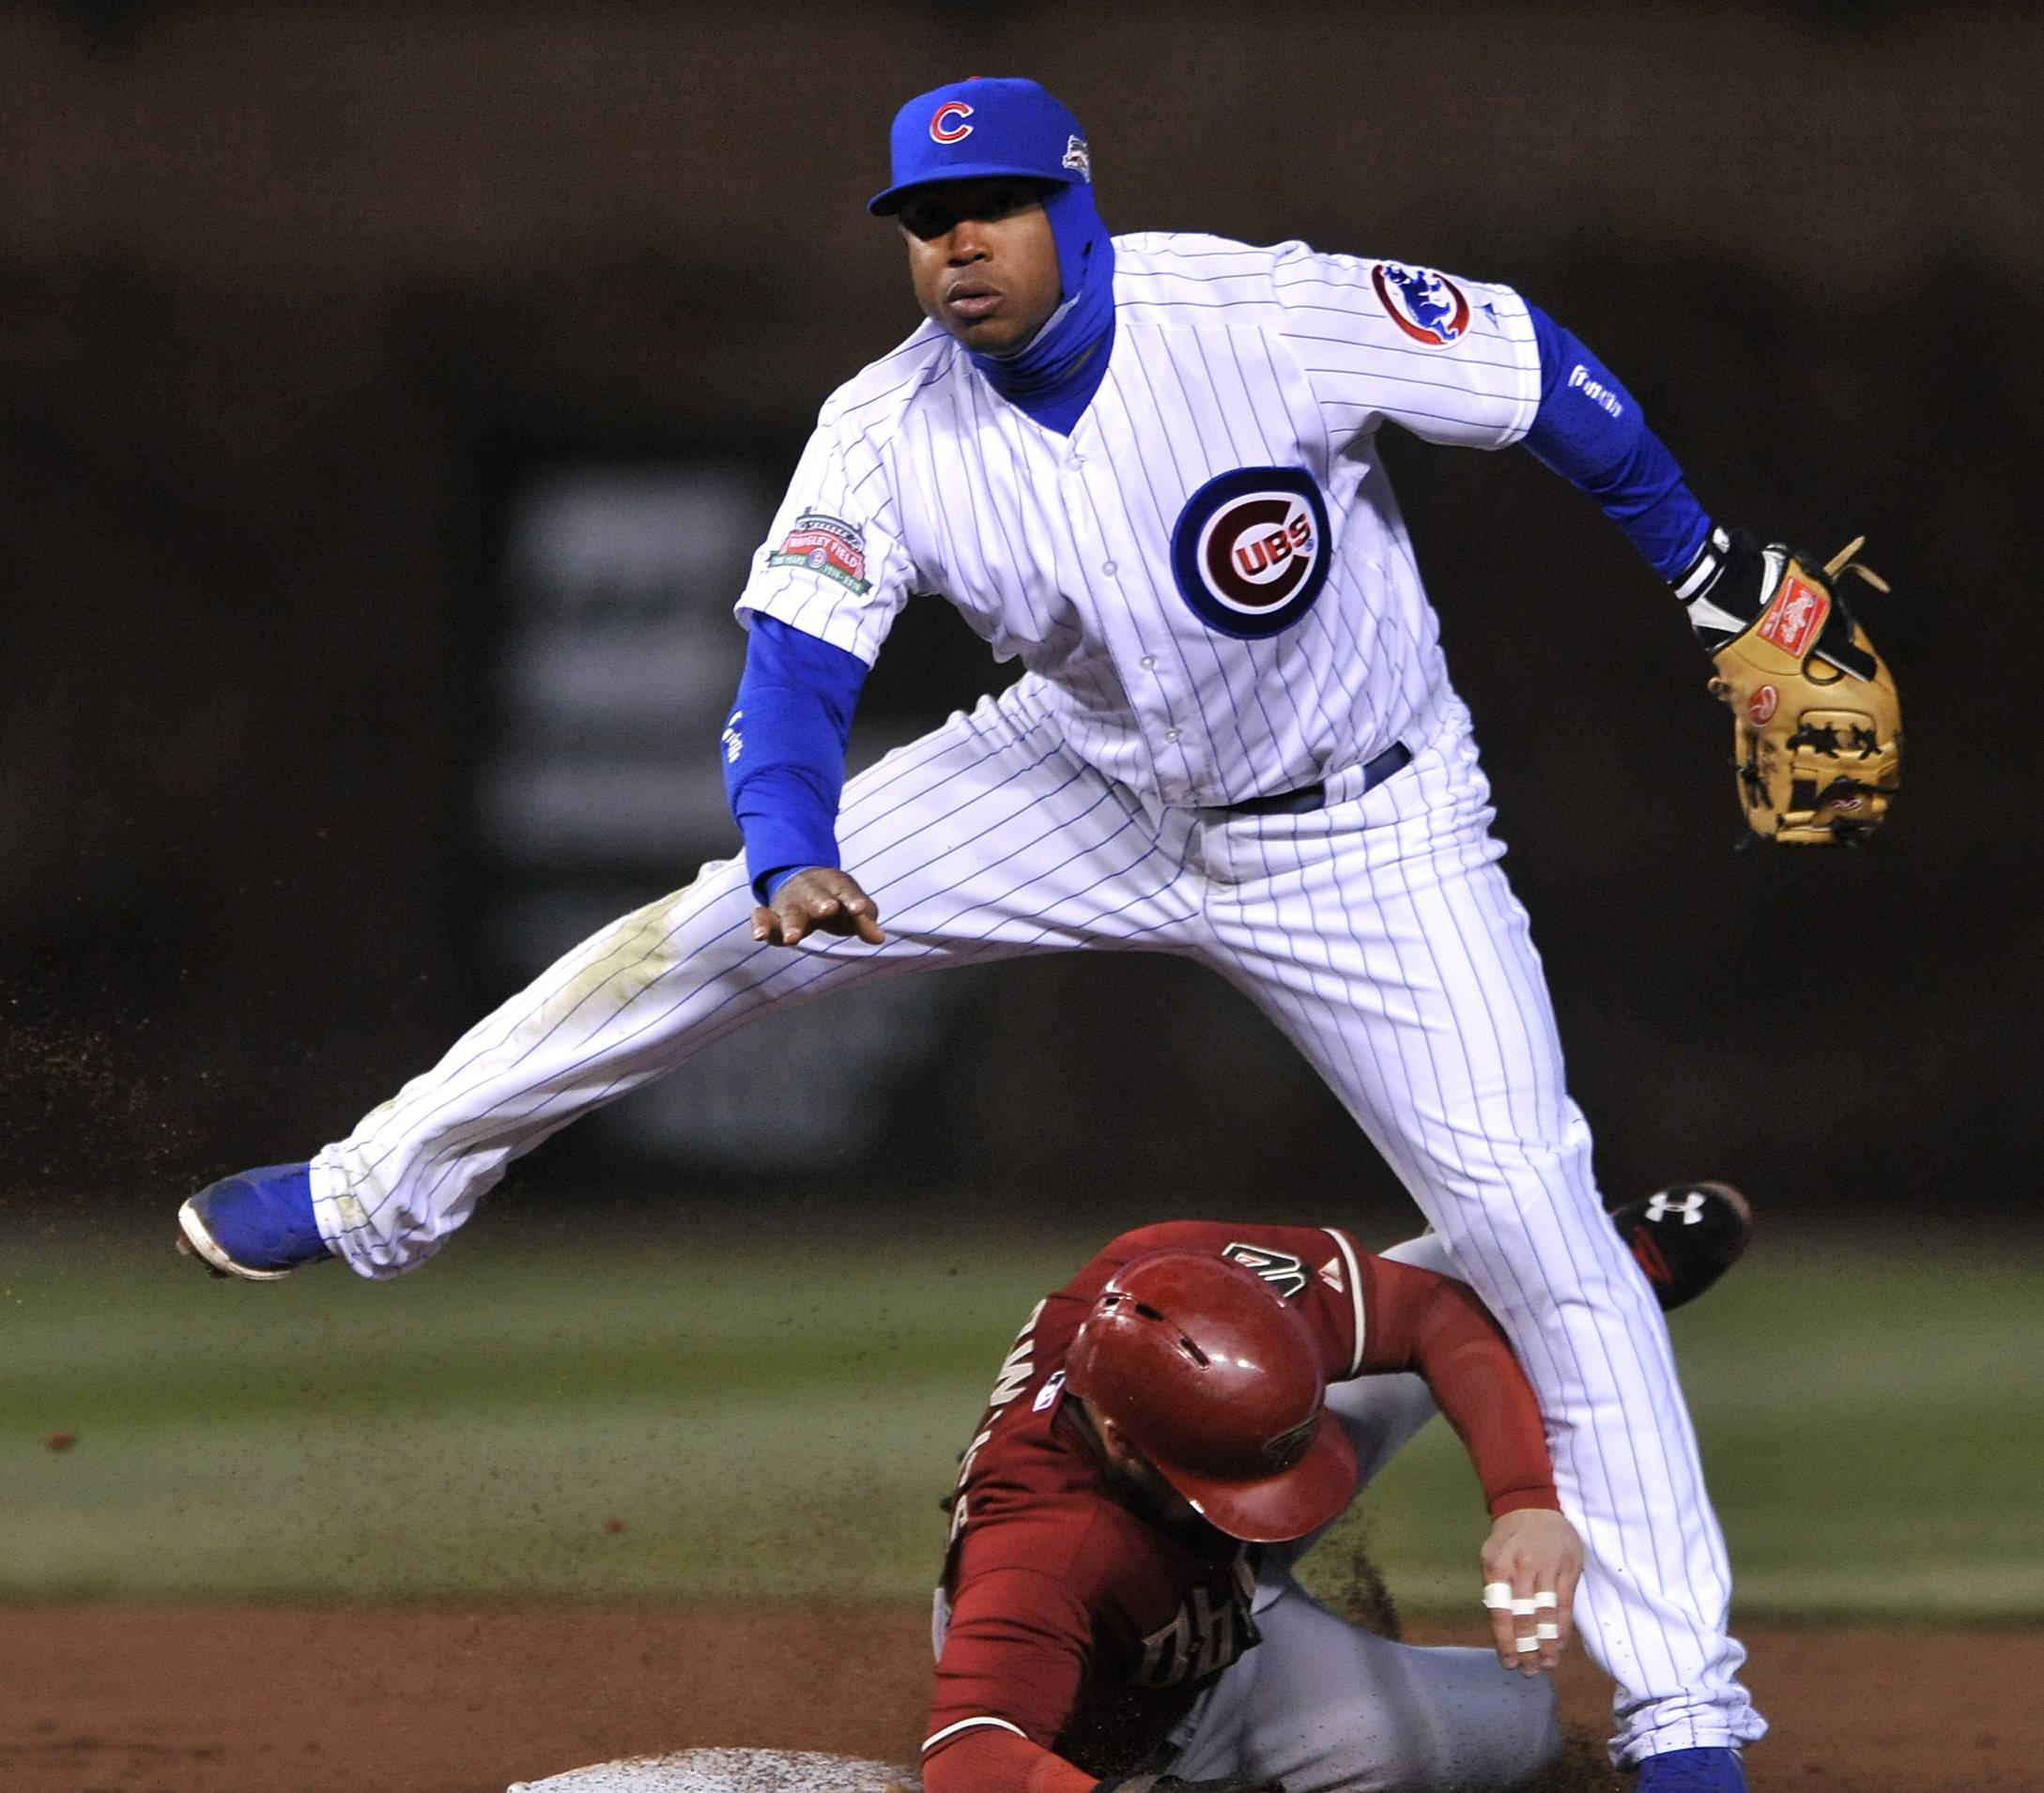 Cubs second baseman Luis Valbuena watches his throw to first base after forcing out the Diamondbacks' Chris Owings at second in the third inning Tuesday at Wrigley Field.